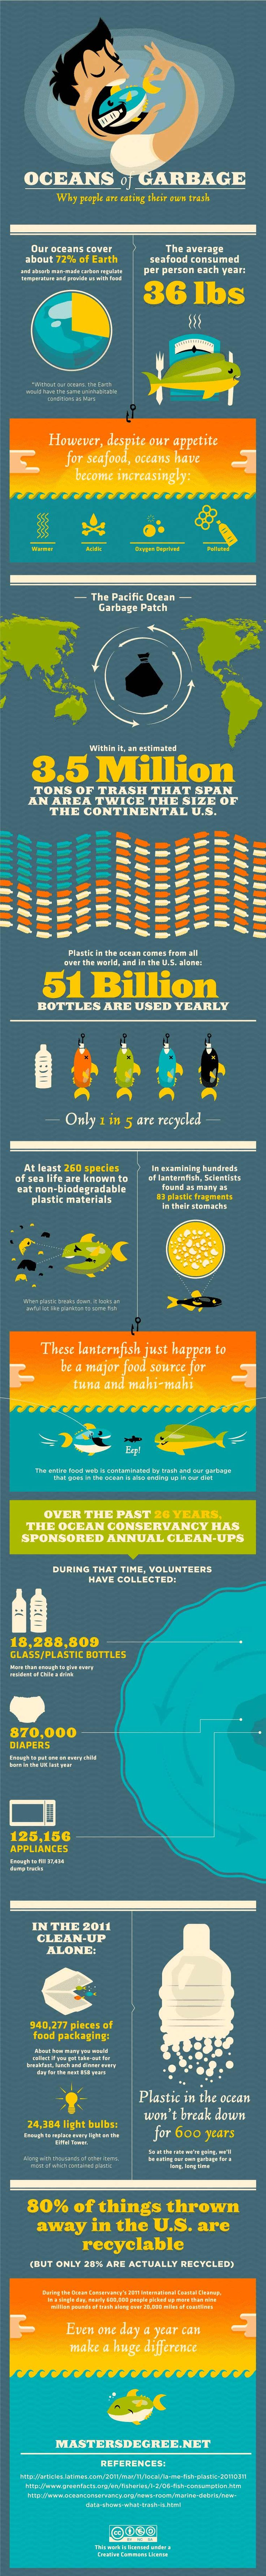 Oceans of garbage:  We are eating our own trash. What goes in; must come out; goes back in.